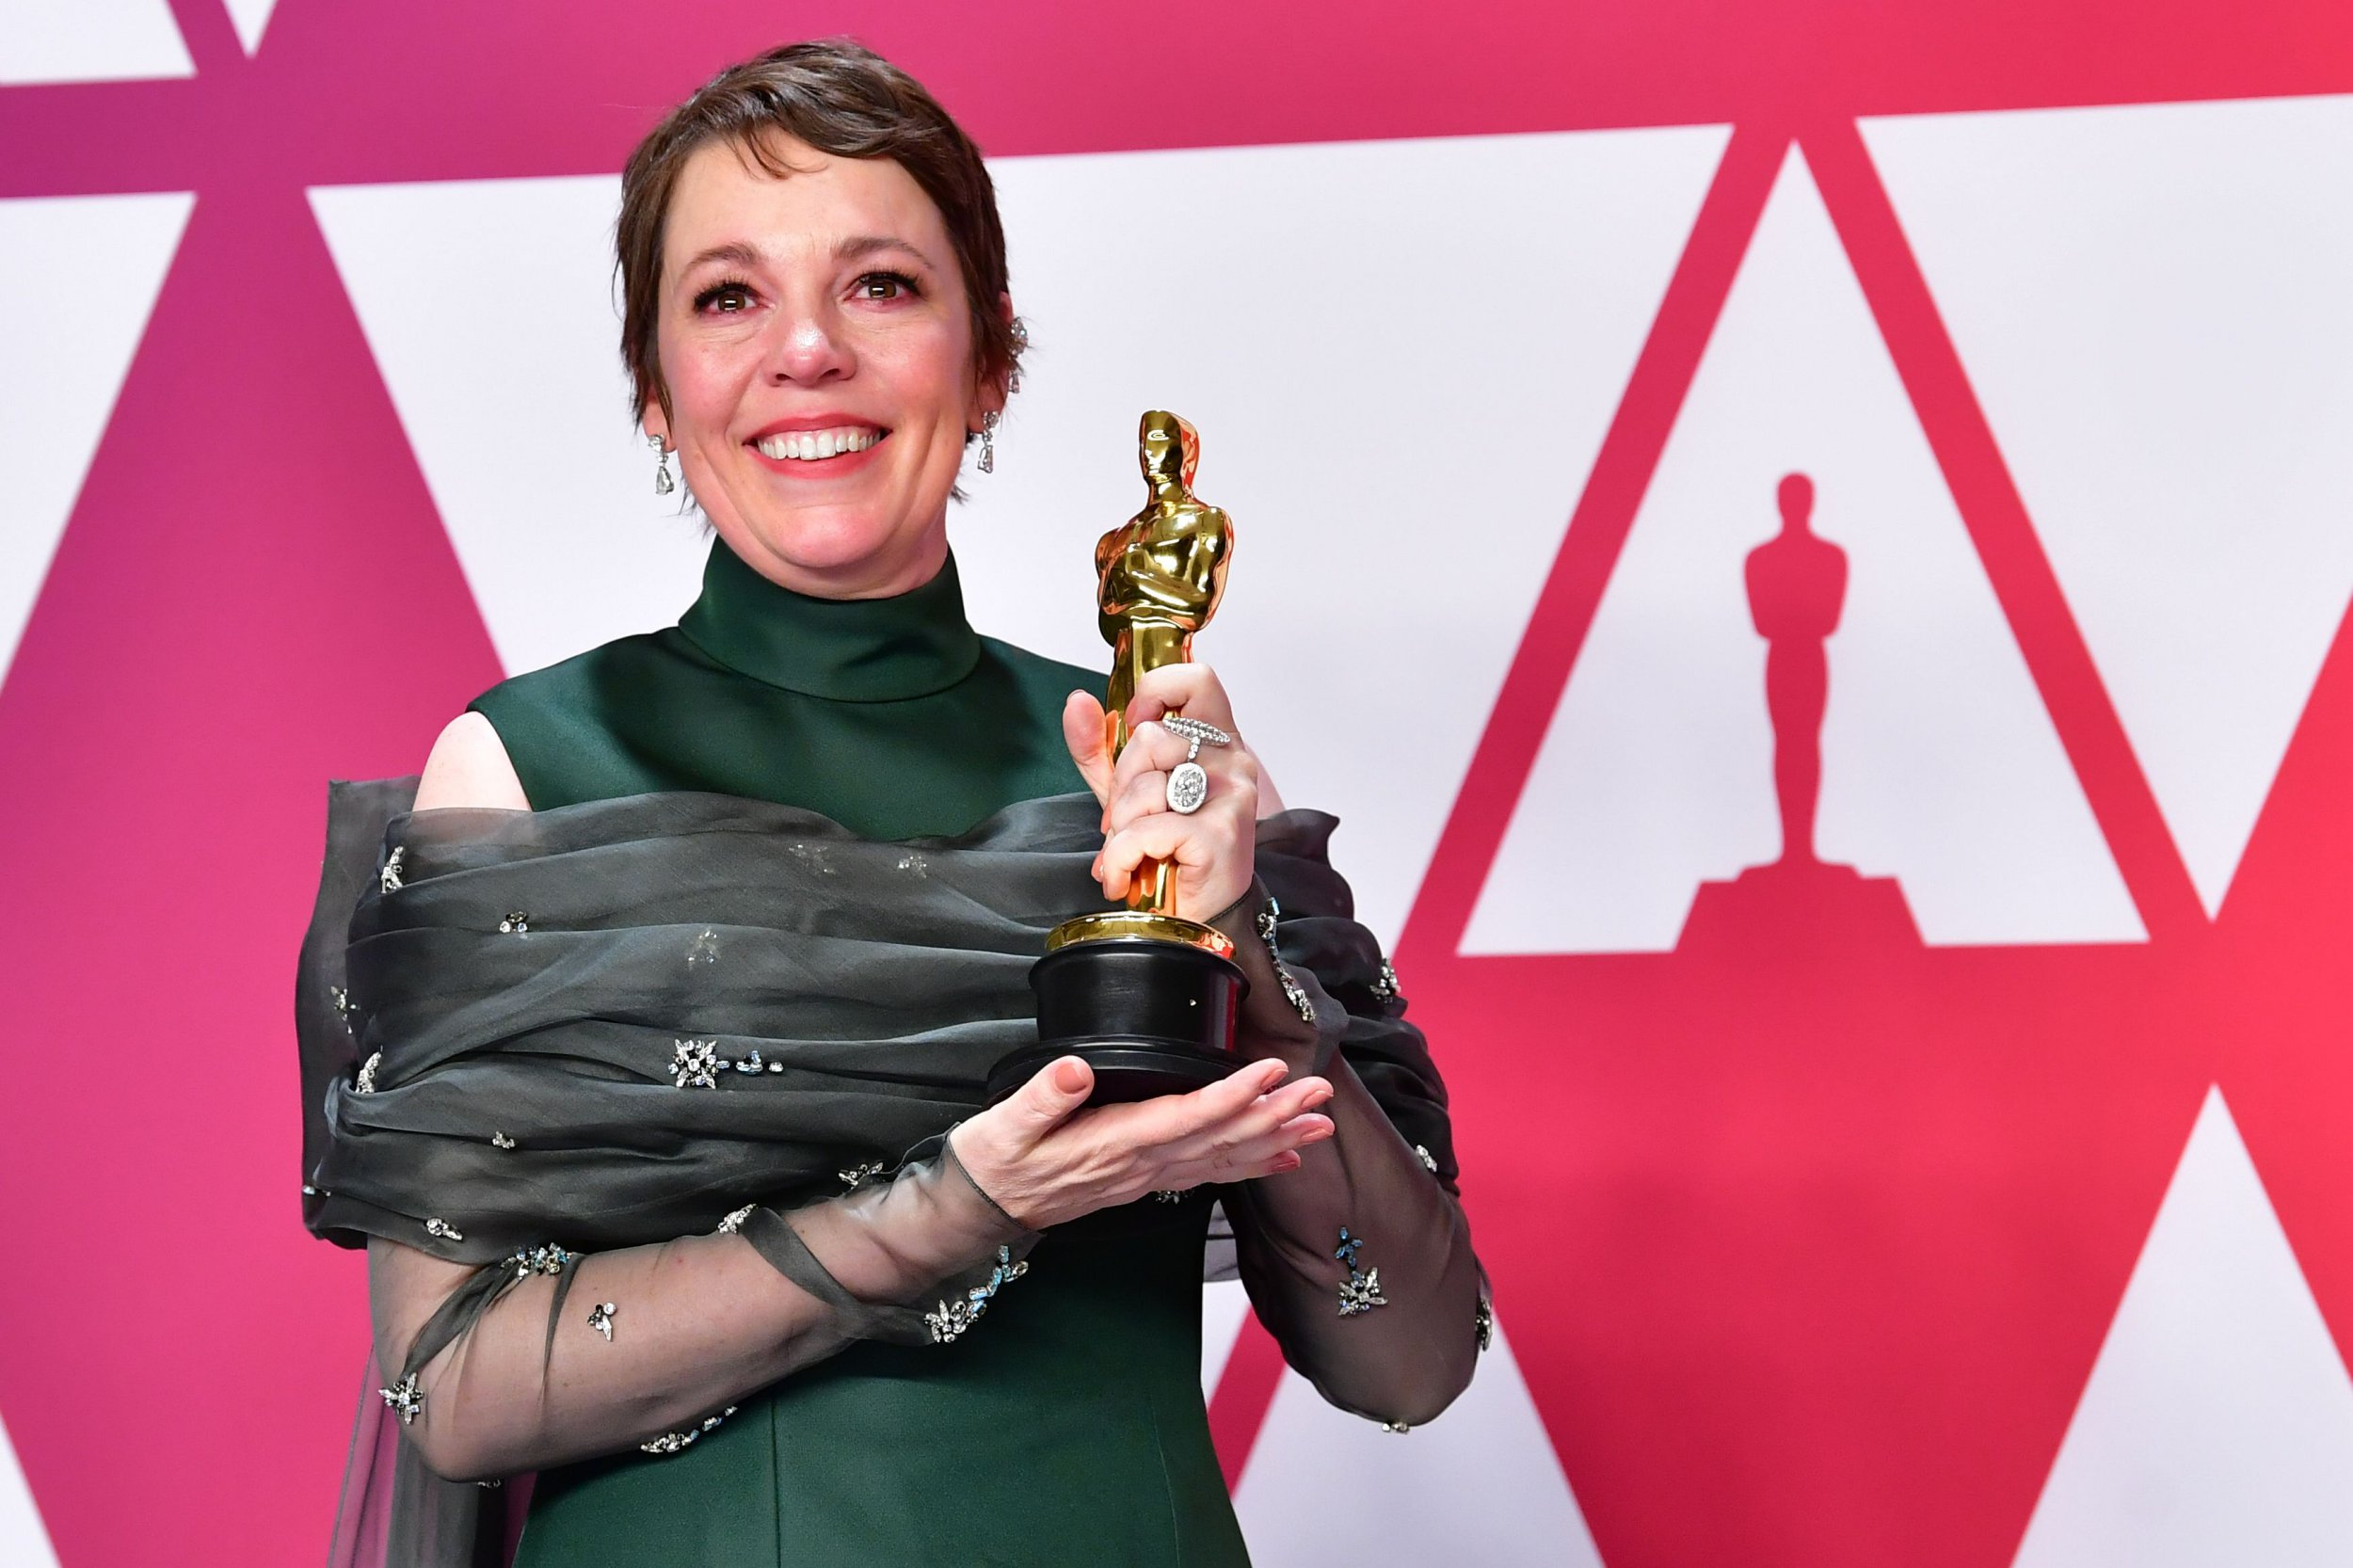 """TOPSHOT - Best Actress winner for """"The Favourite"""" Olivia Colman poses in the press room with her Oscar during the 91st Annual Academy Awards at the Dolby Theater in Hollywood, California on February 24, 2019. (Photo by FREDERIC J. BROWN / AFP)FREDERIC J. BROWN/AFP/Getty Images"""